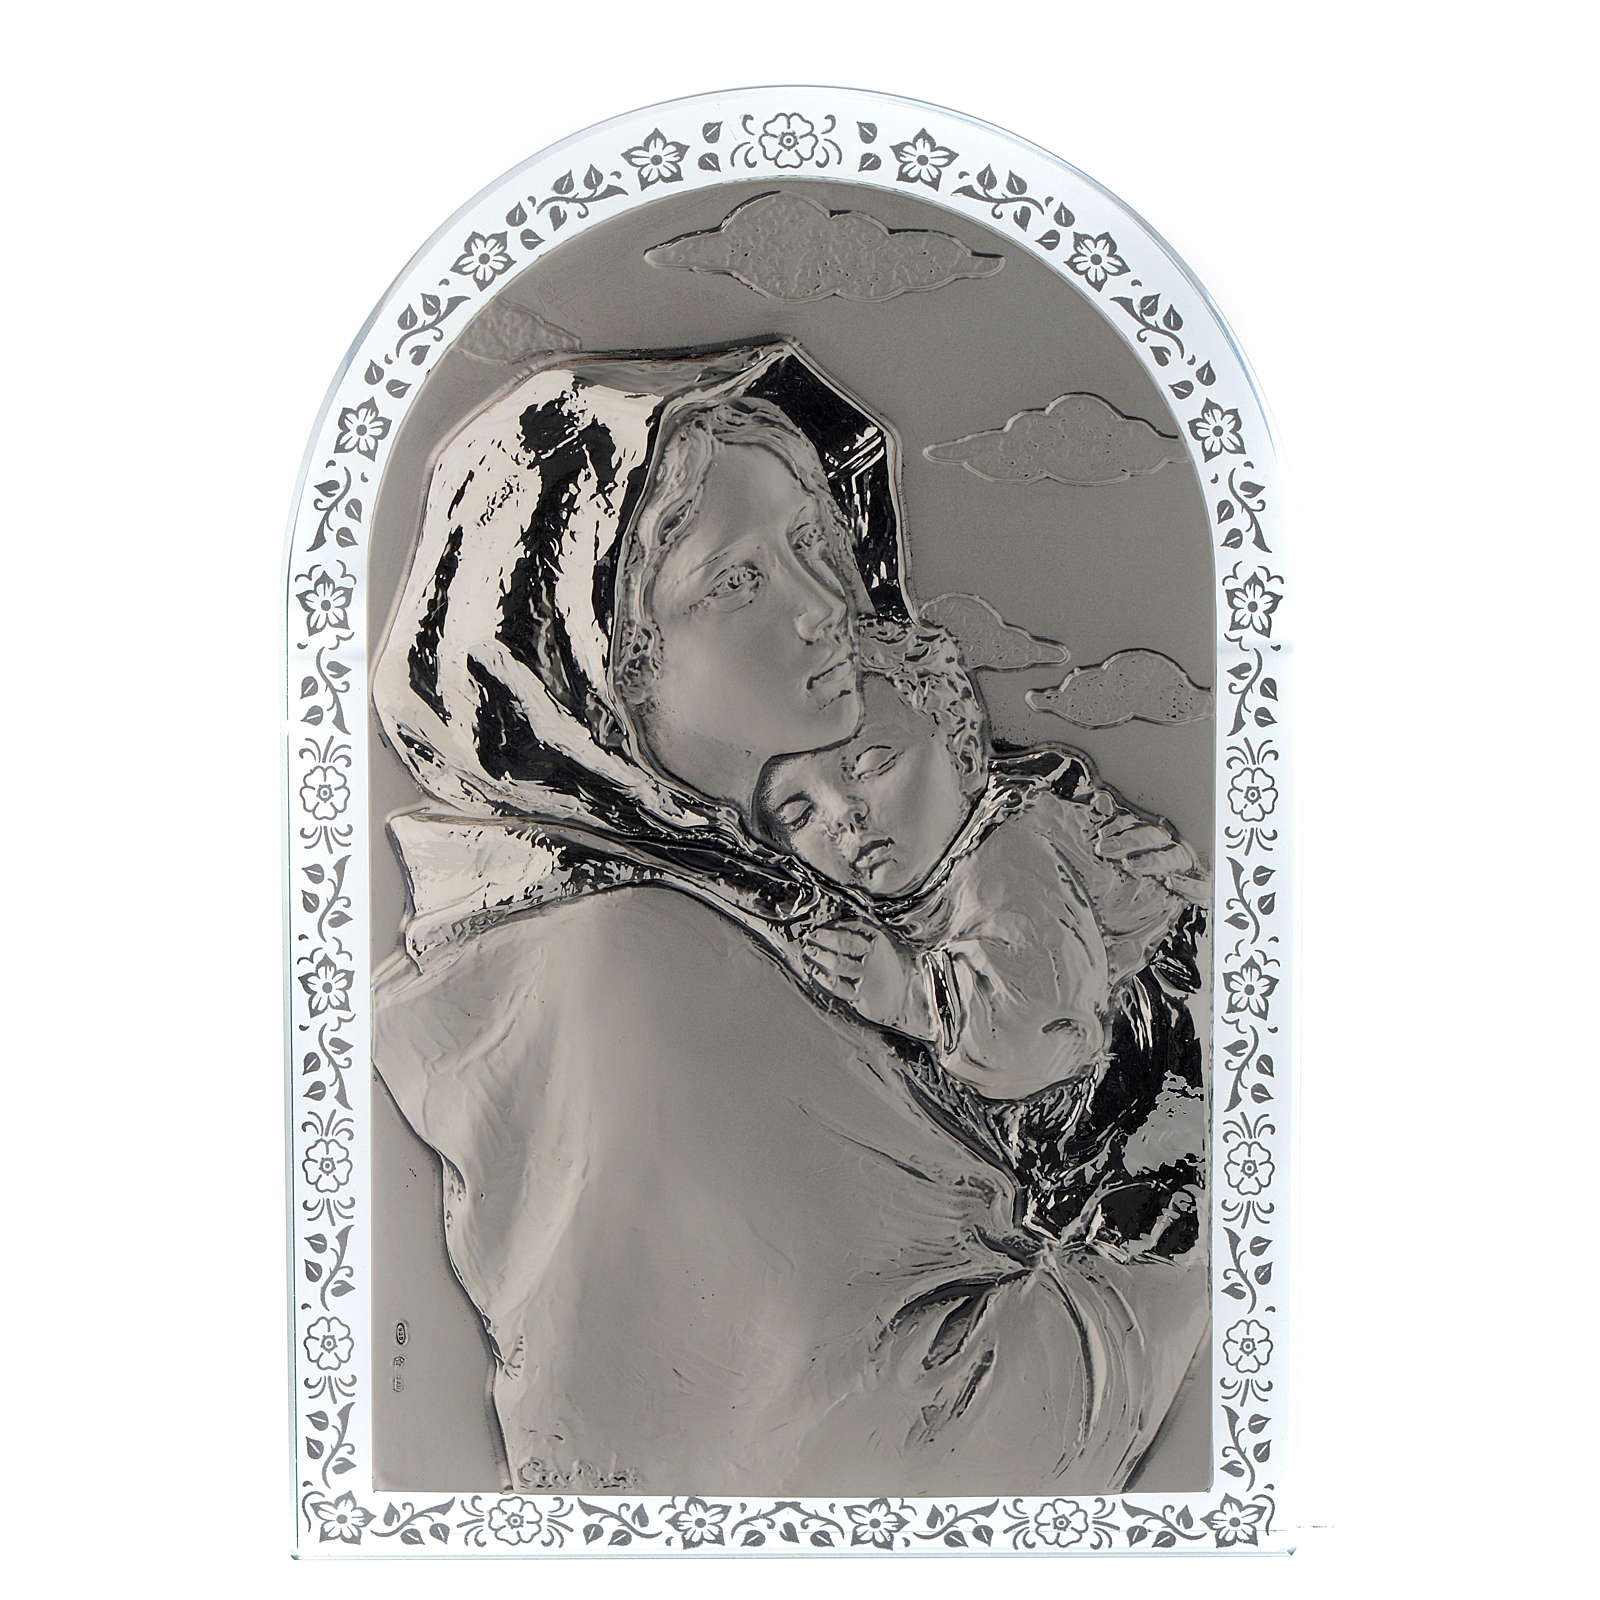 Bas-relief in silver, Ferruzzi's Madonna glass frame 4